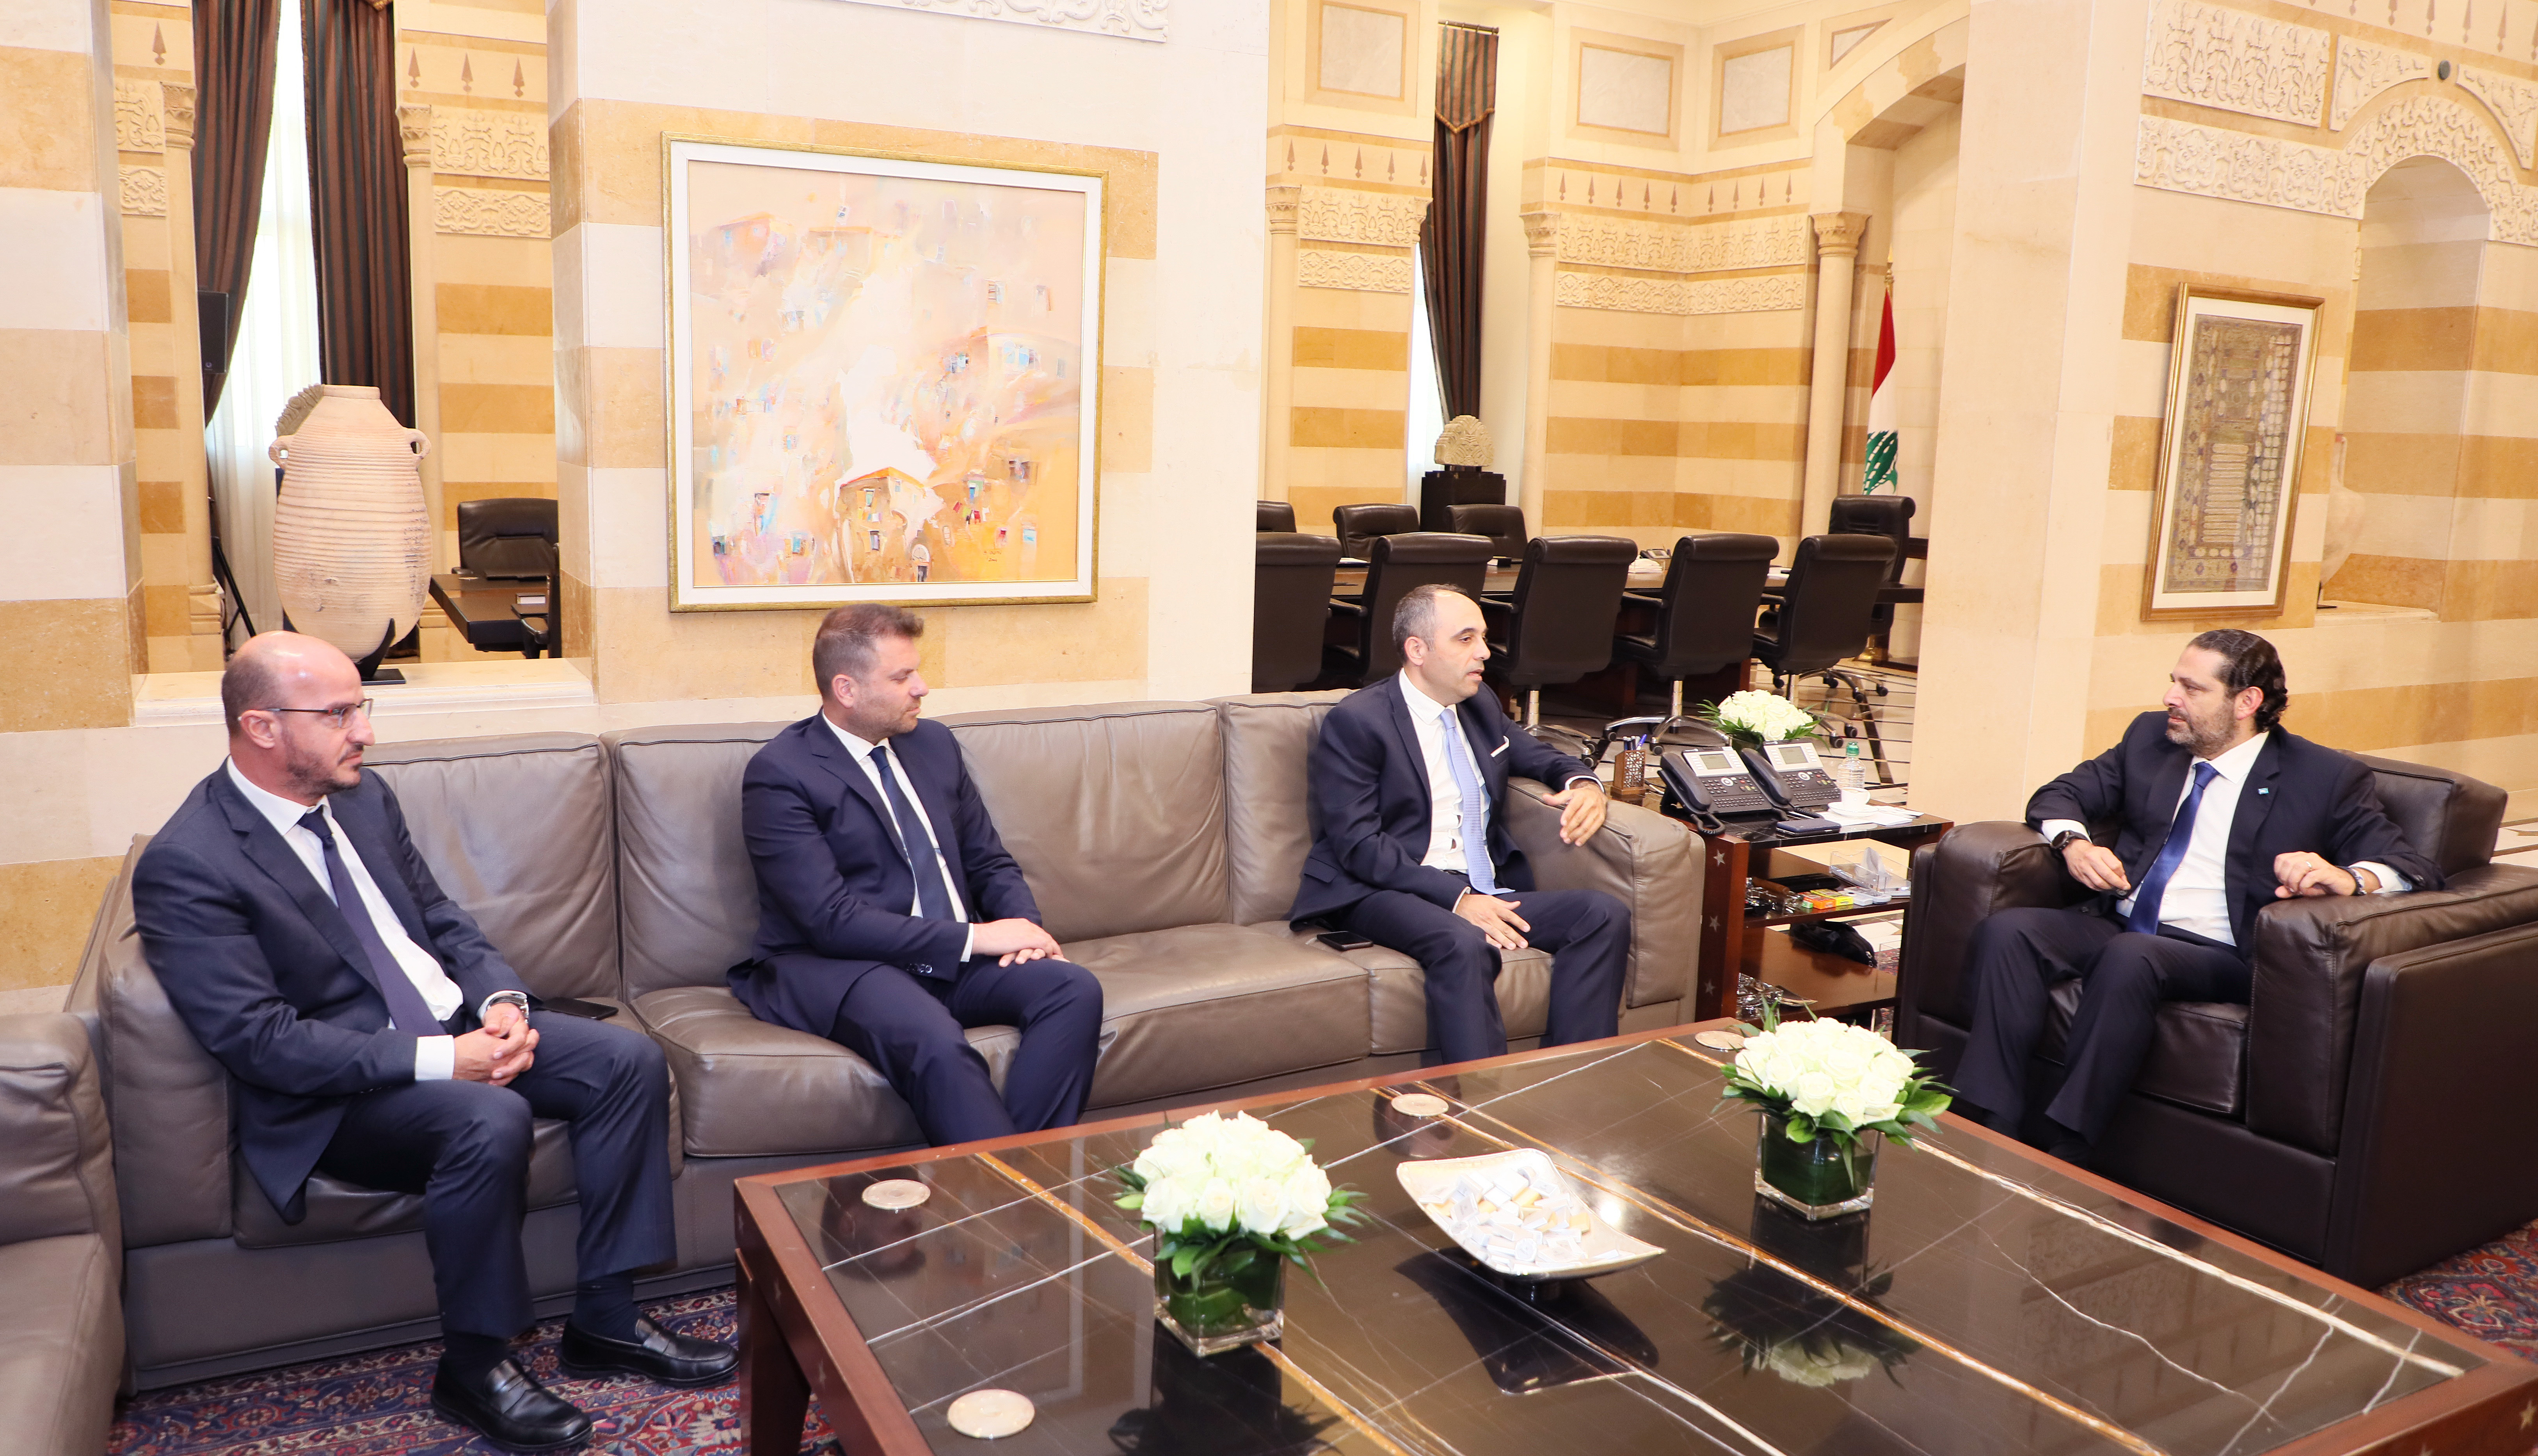 Pr Minister Saad Hariri meets a Delegation from Anghani